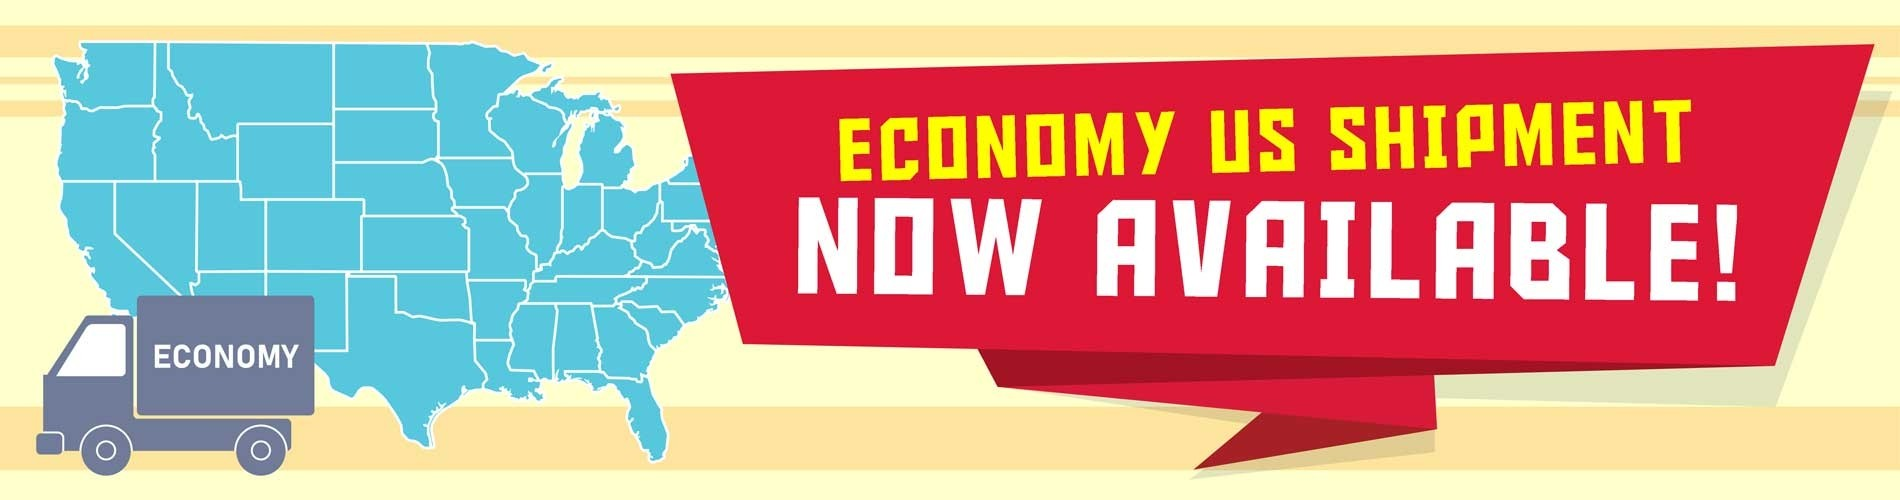 ECONOMY US SHIPMENT NOW AVAILABLE